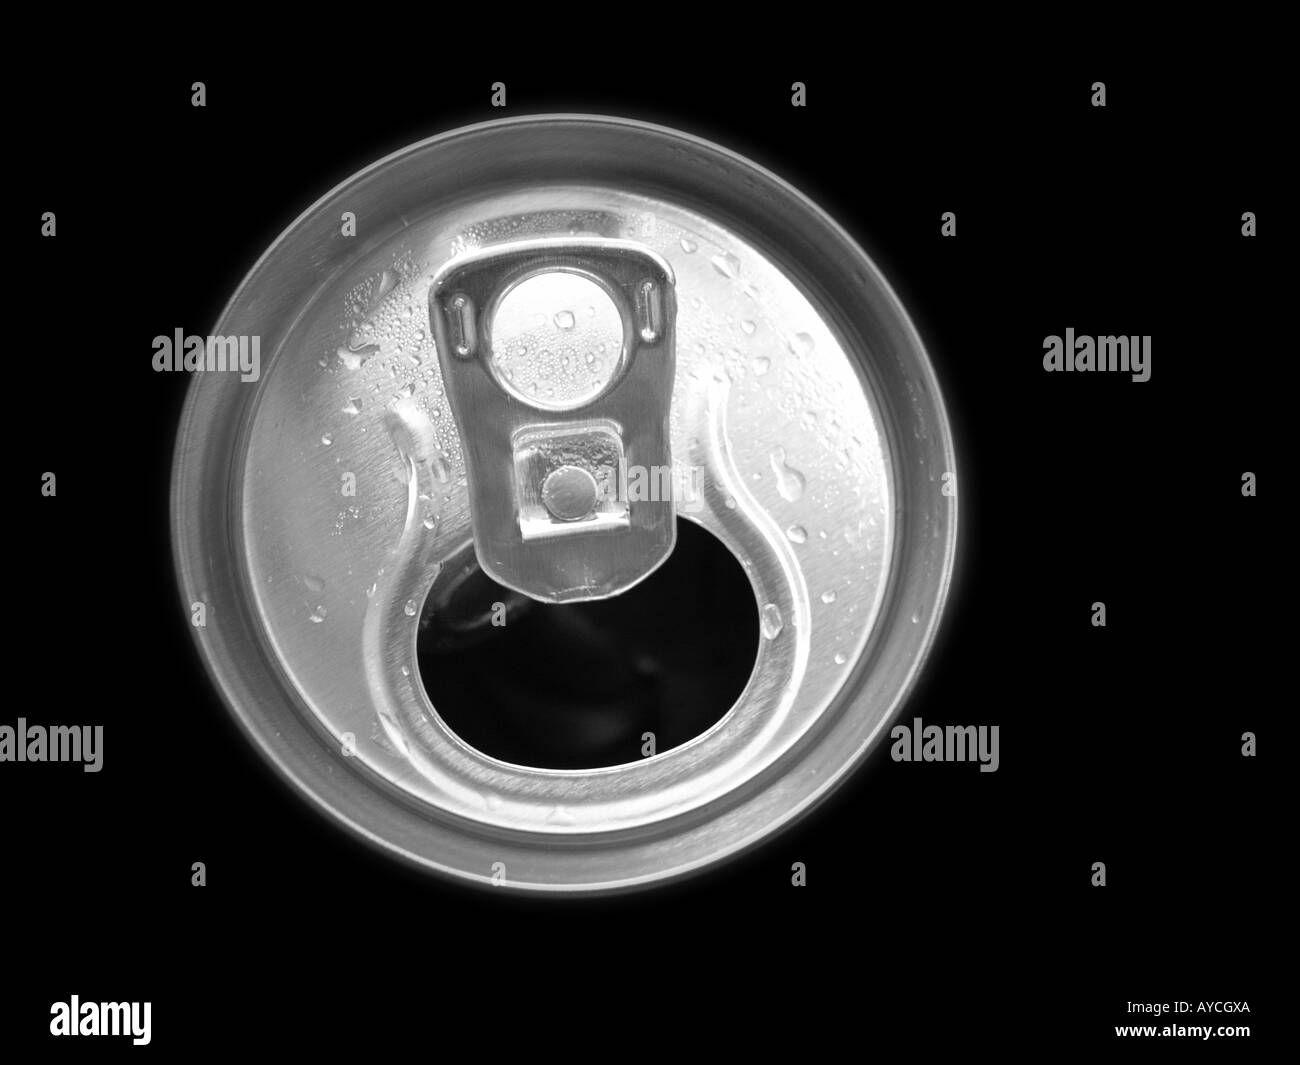 Top of a aluminum can pull tab recycled metal - Stock Image